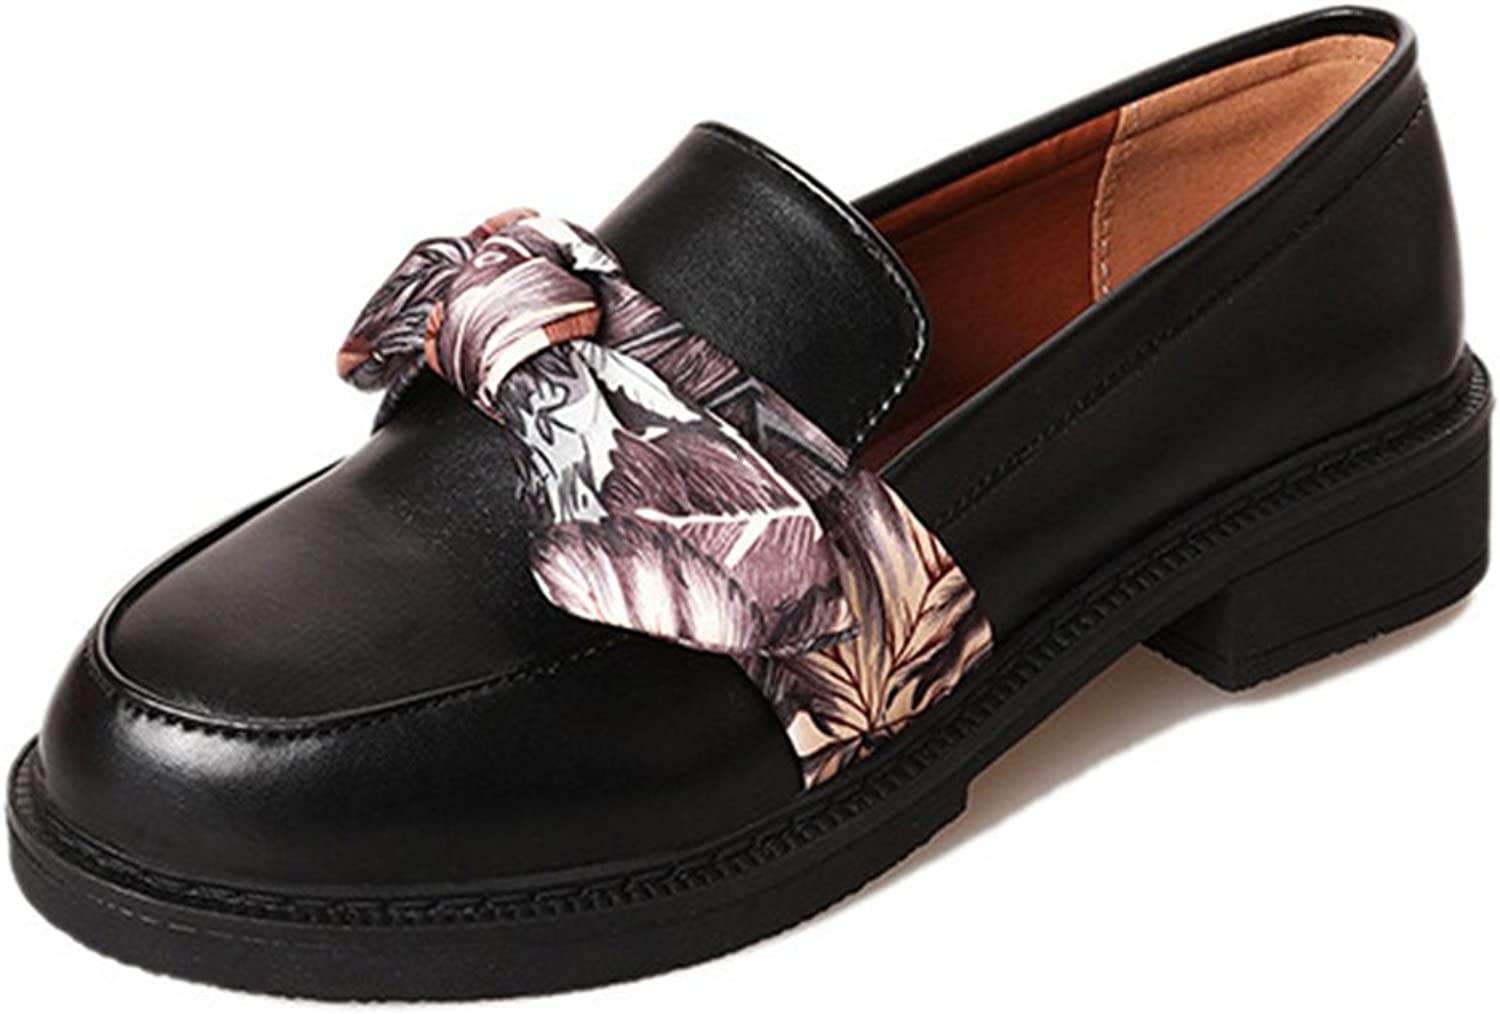 Btrada Women's Fashion Bowknot Ribbon Slip On Penny Loafers Round Toe Moccasins Driving shoes Flat shoes